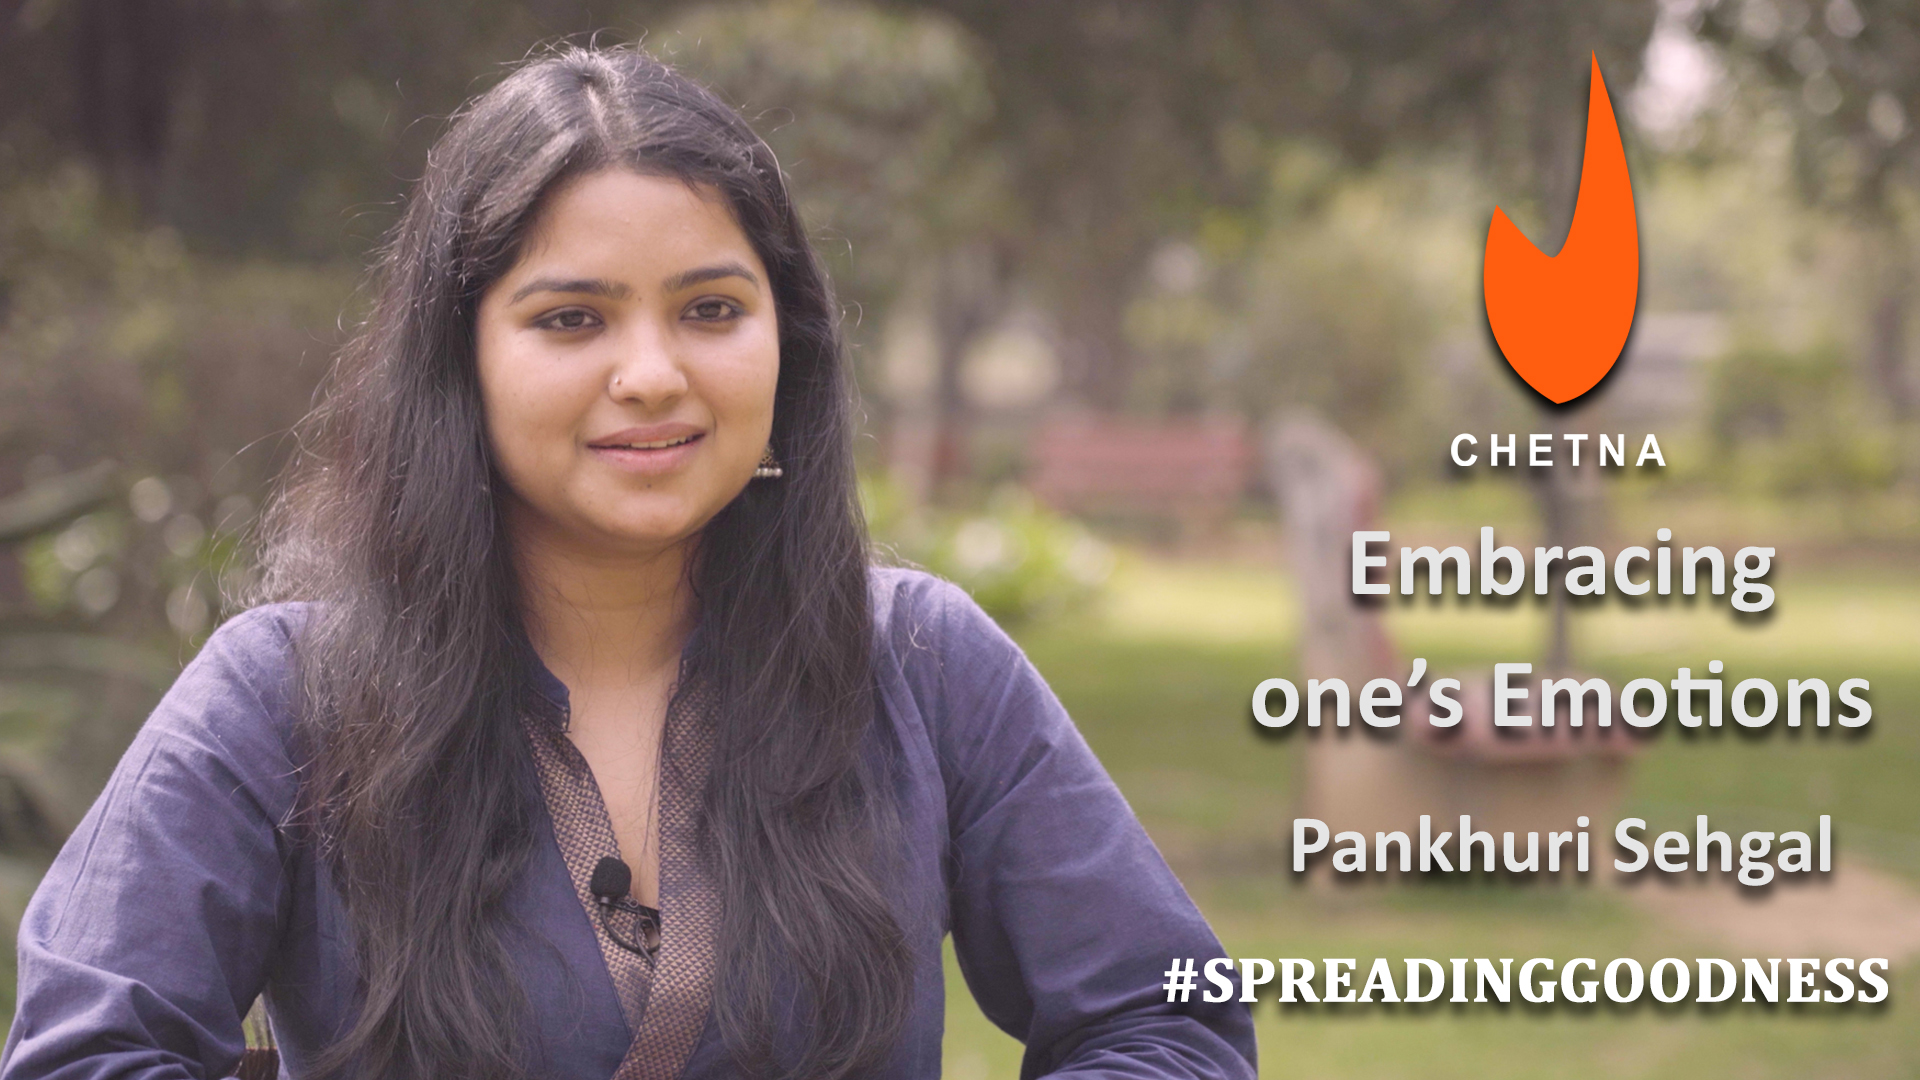 Embracing One's Emotions - Spreading Goodness